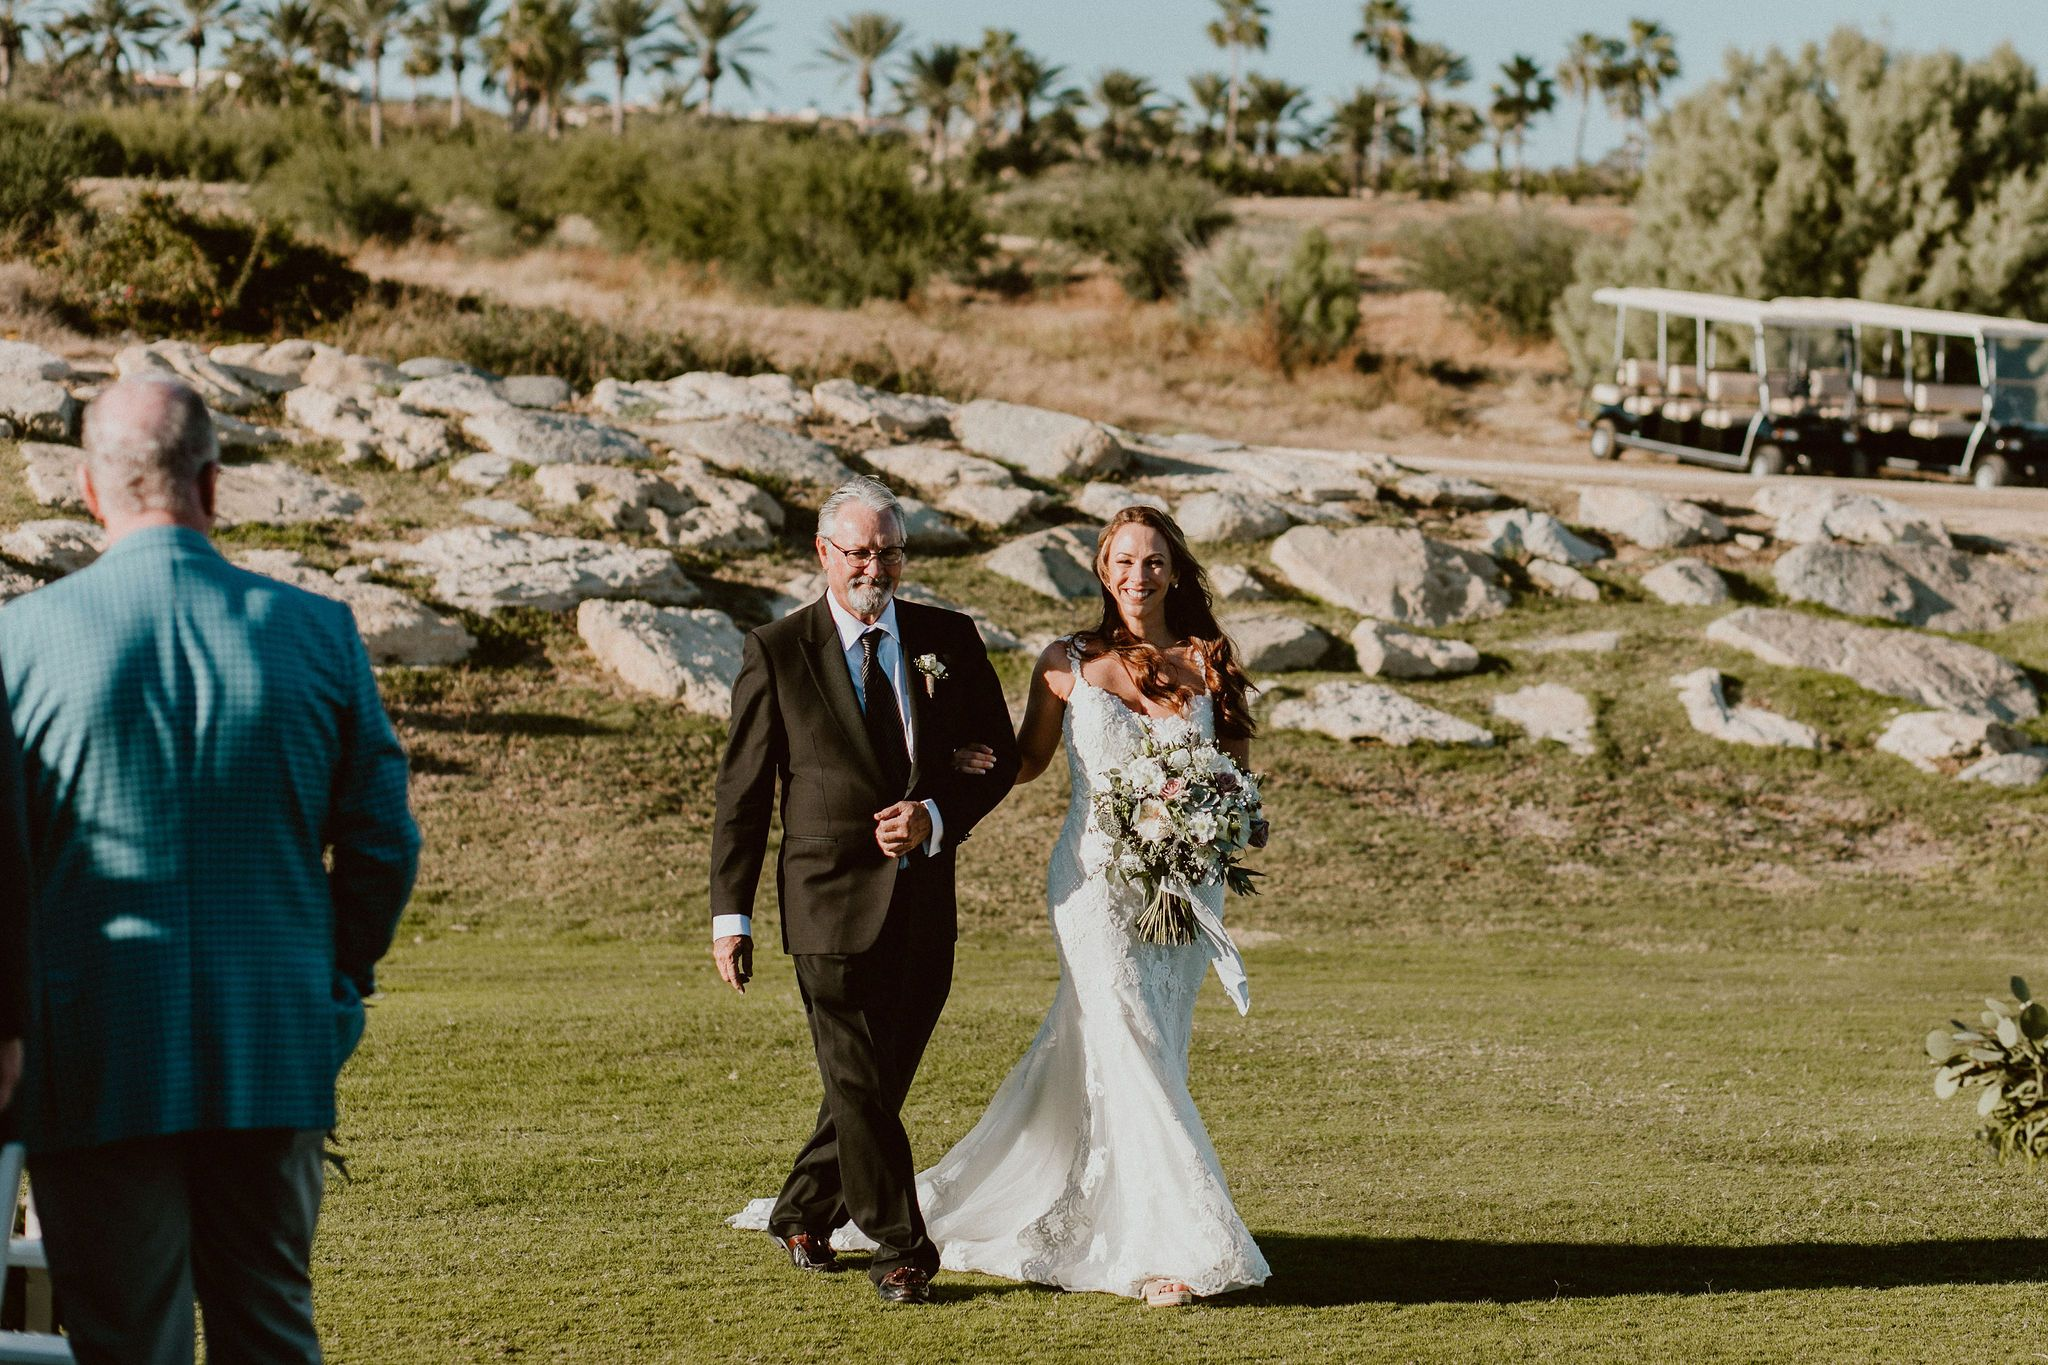 Bride with her dad walking down the Ceremony Aisle at Cabo del Sol Gold Club House. Her Wedding was in Cabo San Lucas, Mexico. Destination Wedding Planning by Cabo Wedding Services.